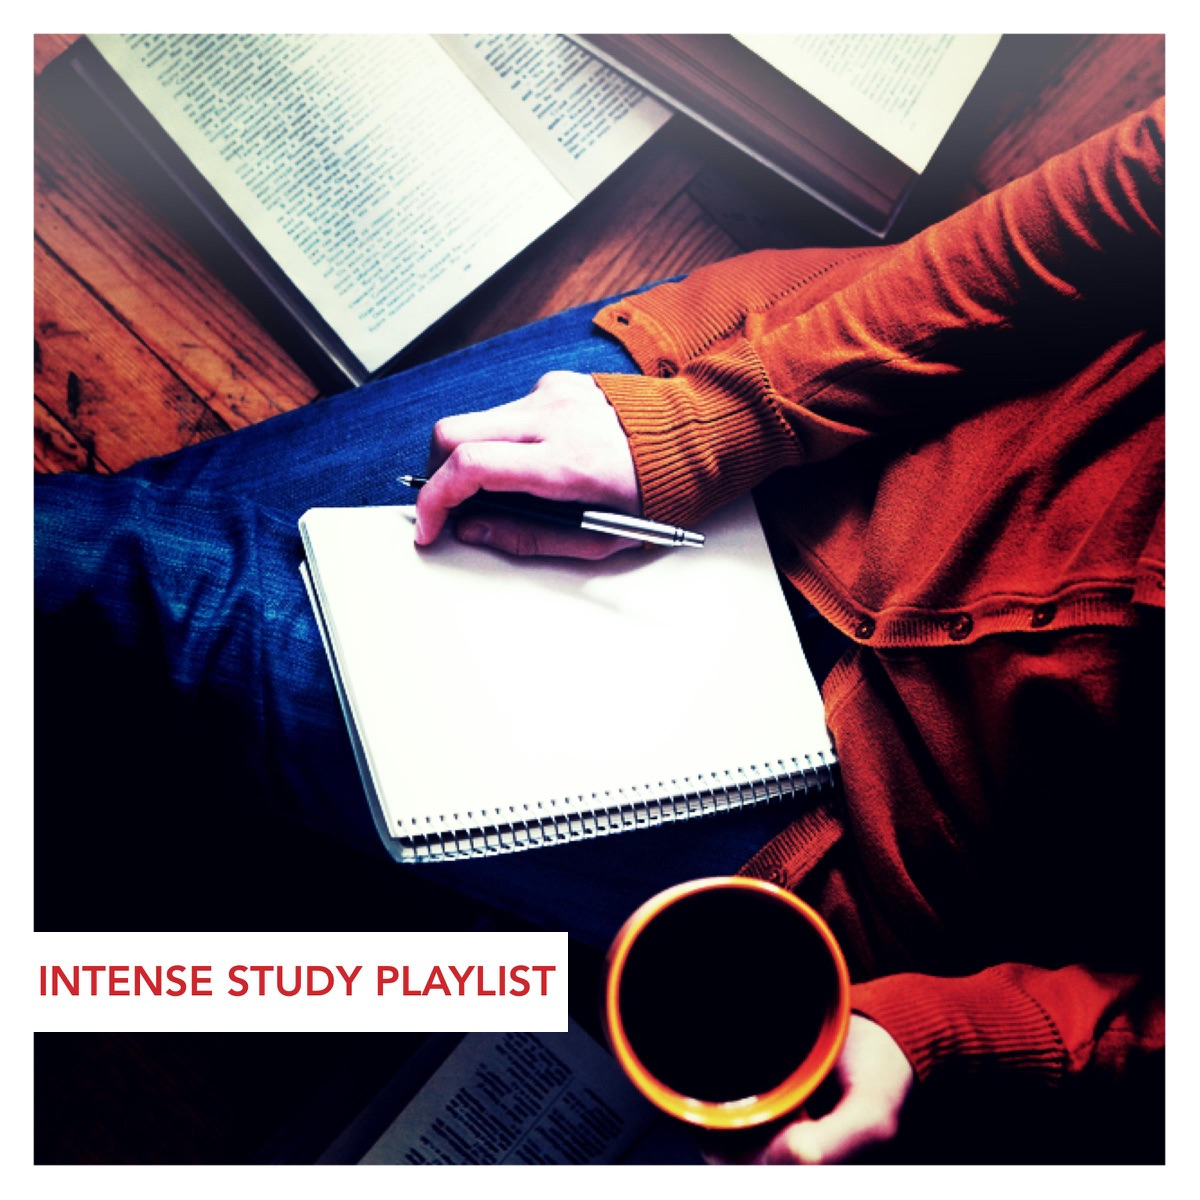 Intense Study Playlist Various Artists CD cover